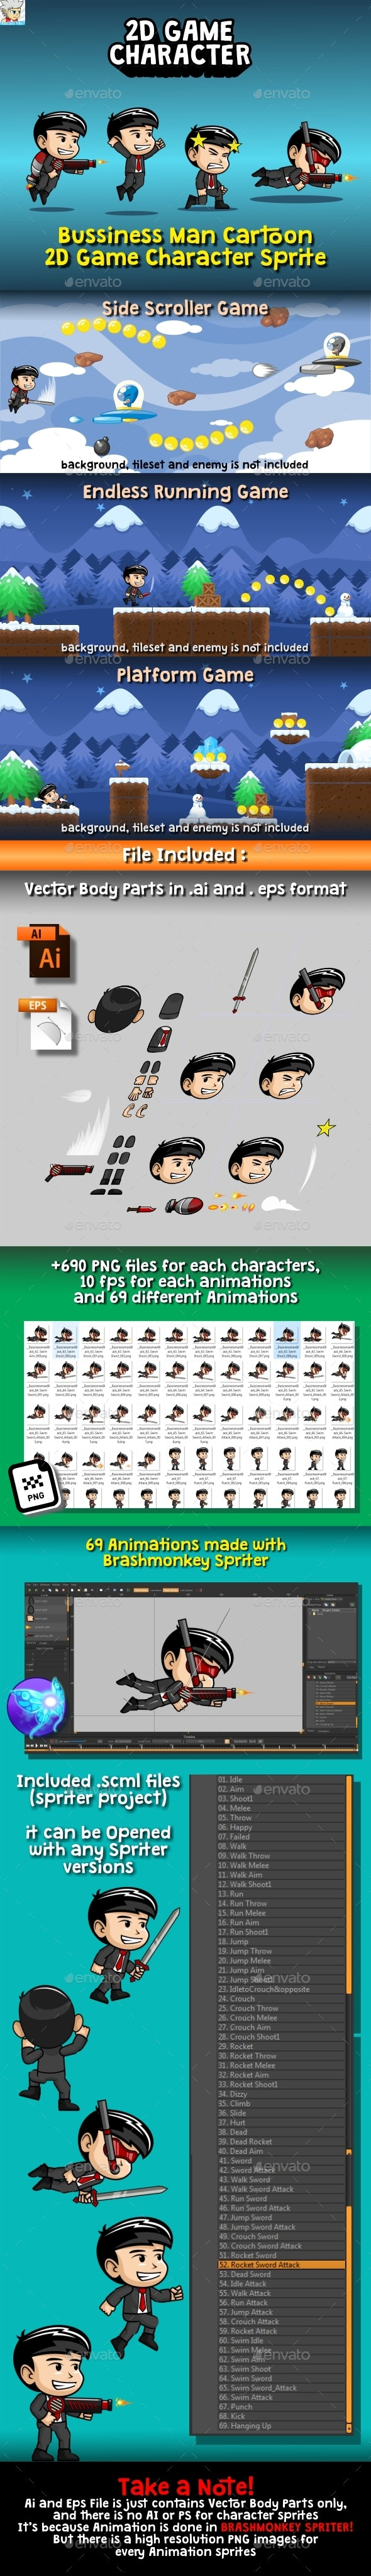 Bussiness Man Cartoon 2D Game Character Sprite - Sprites Game Assets